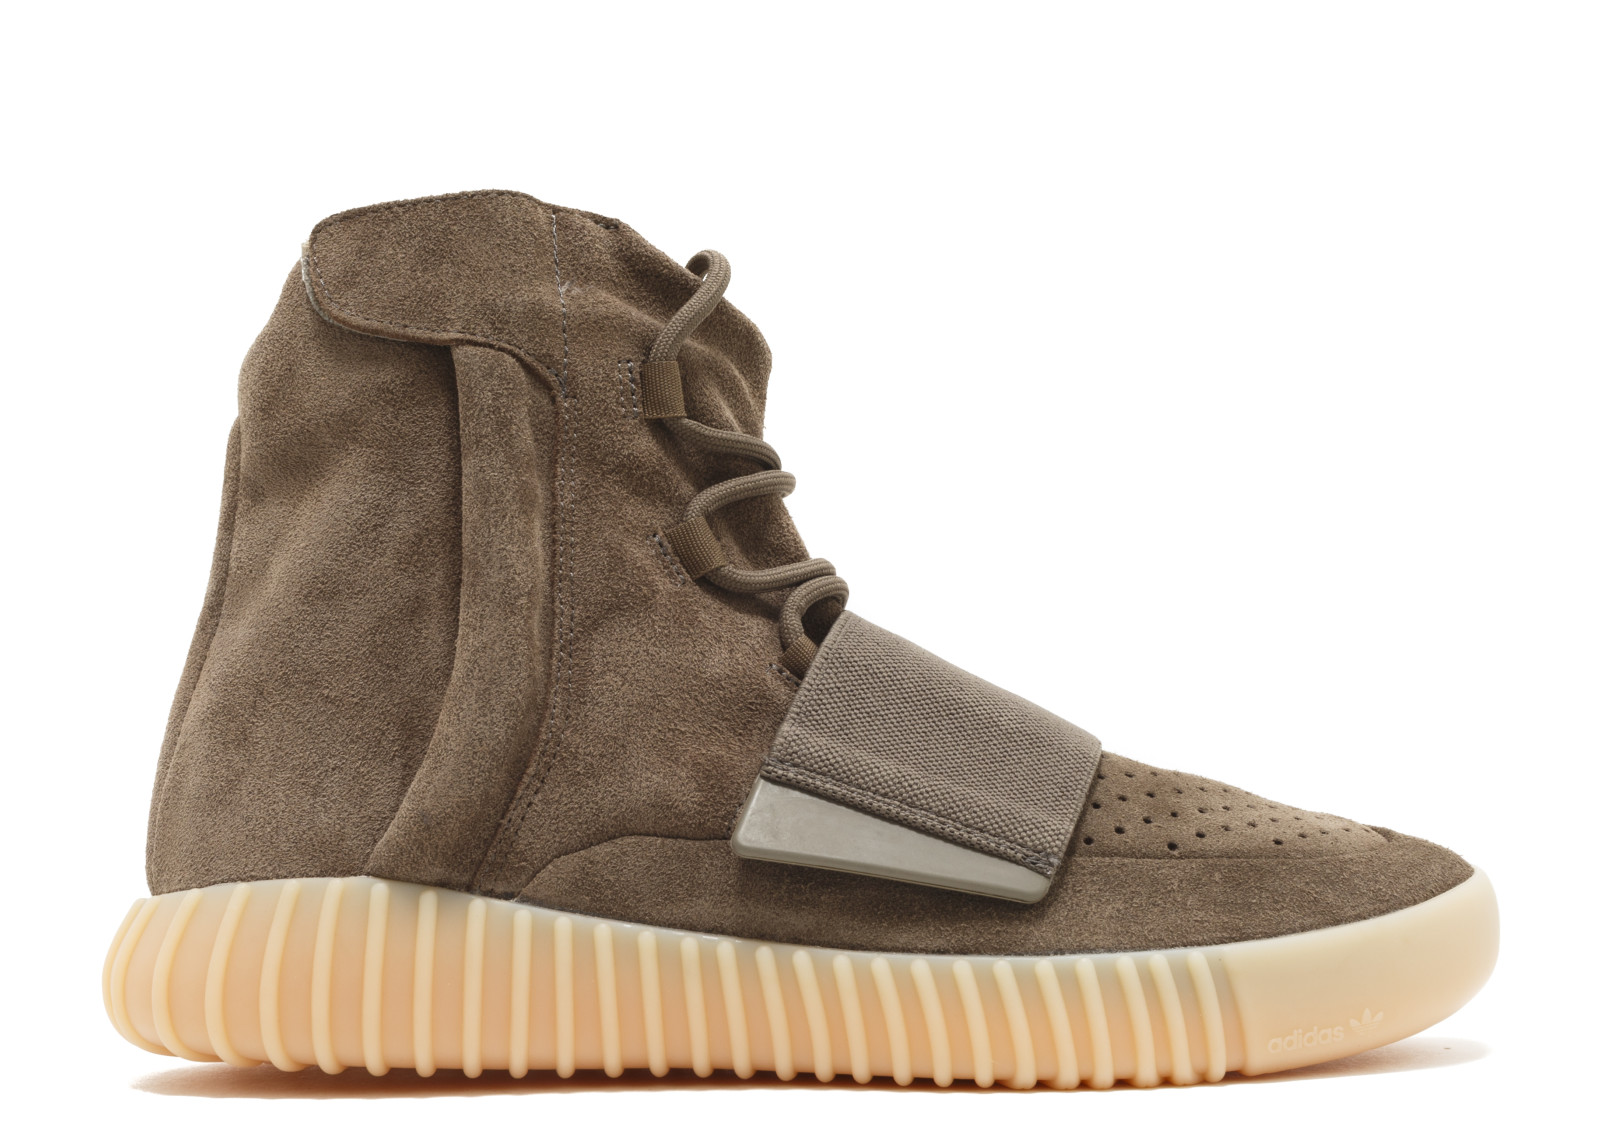 Yeezy Boost 750 Light Brown Gum Chocolate